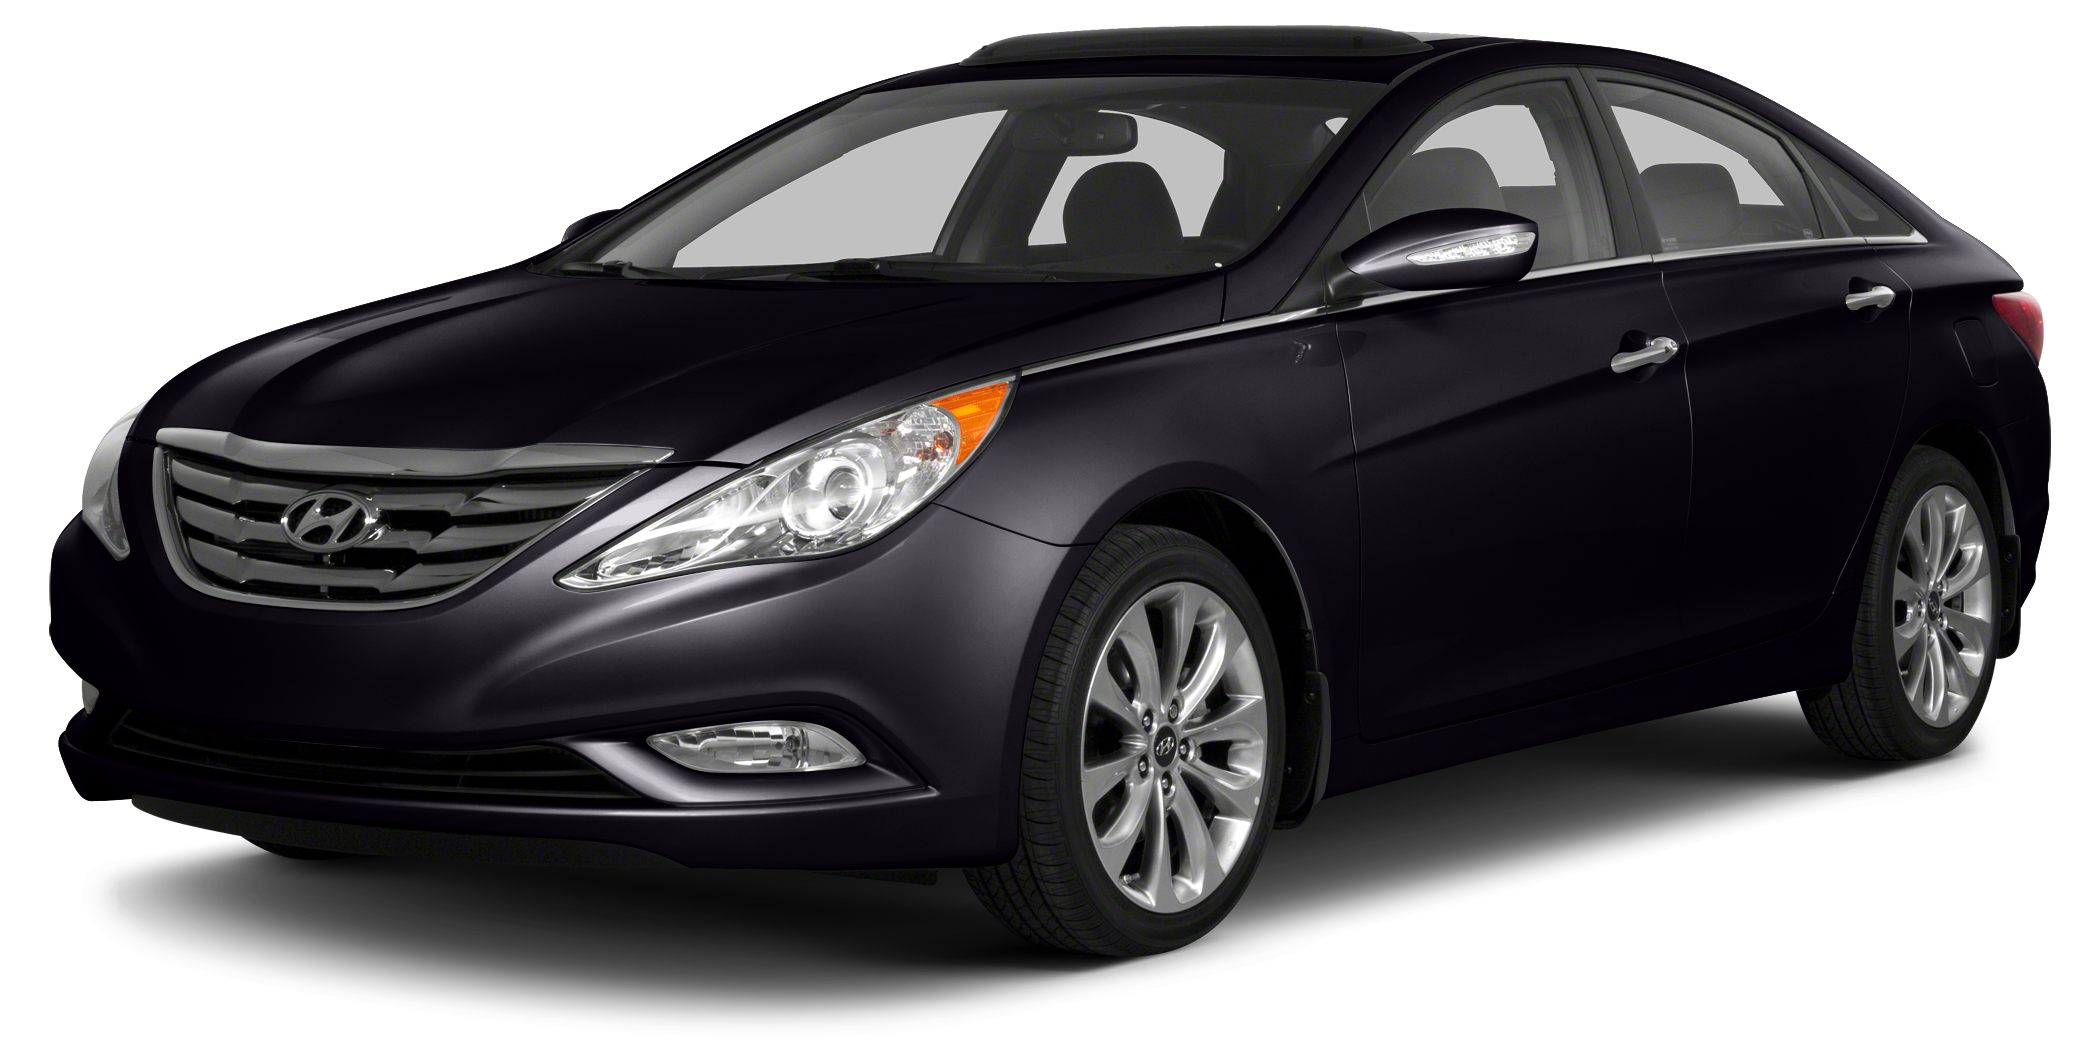 2013 Hyundai Sonata GLS Hands Free Calling and ONE OWNER Popular Equipment Package Automatic